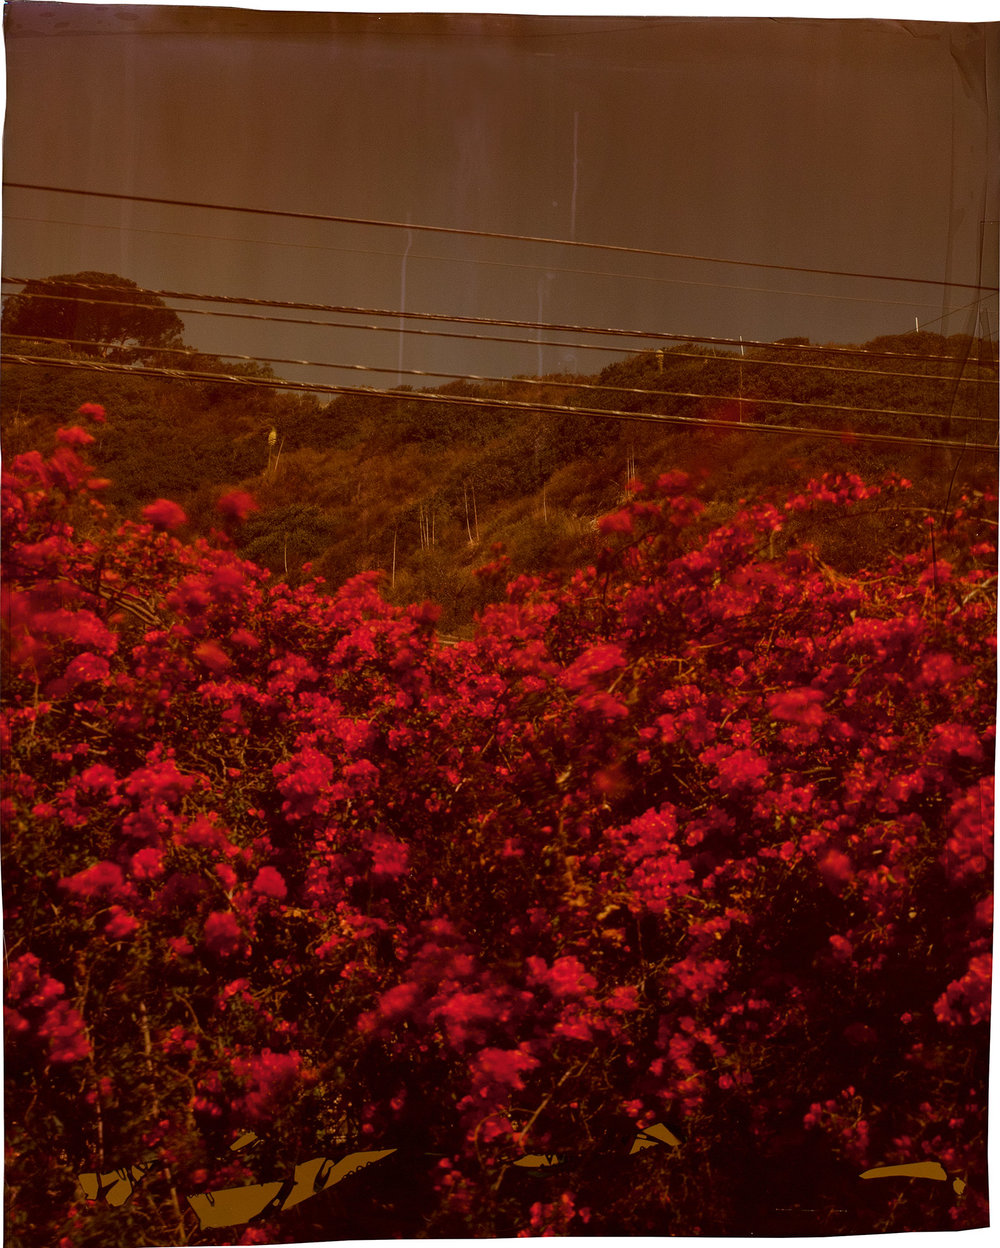 John Chiara,  Topanga Canyon Boulevard at Pacific Coast Highway, Los   Angeles, 2012 ; from  John Chiara: California